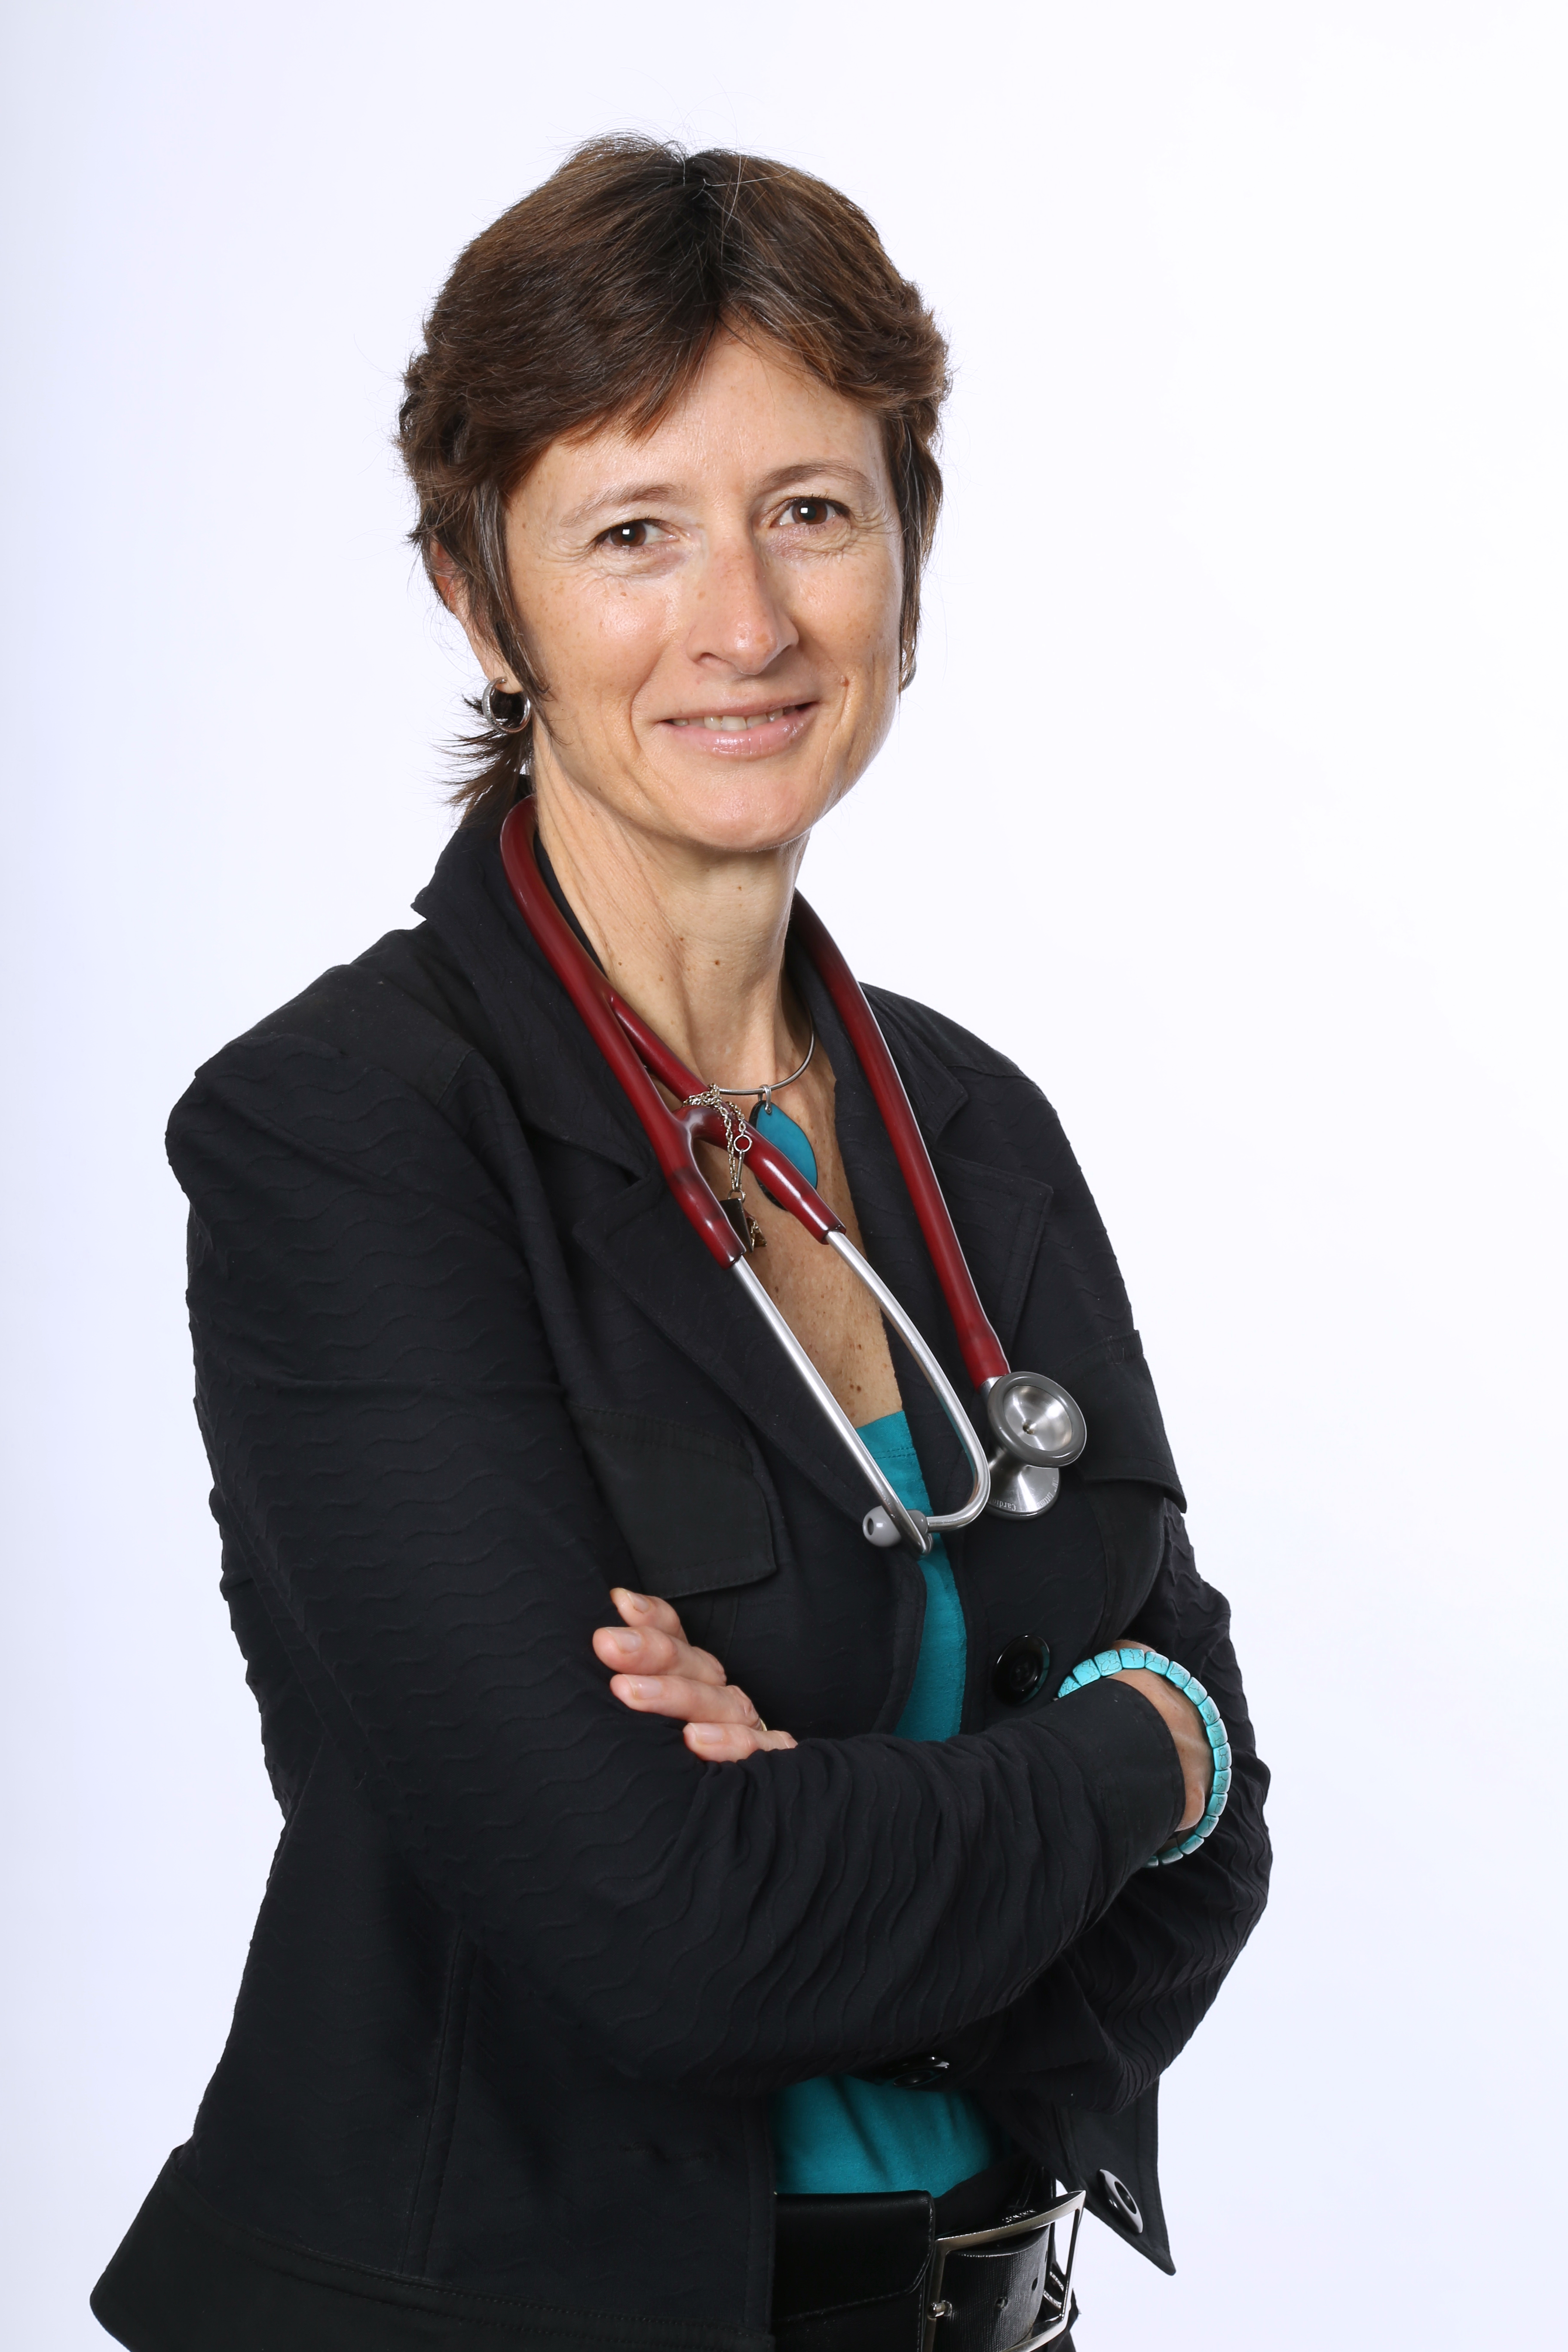 Dr. Paula Harvey